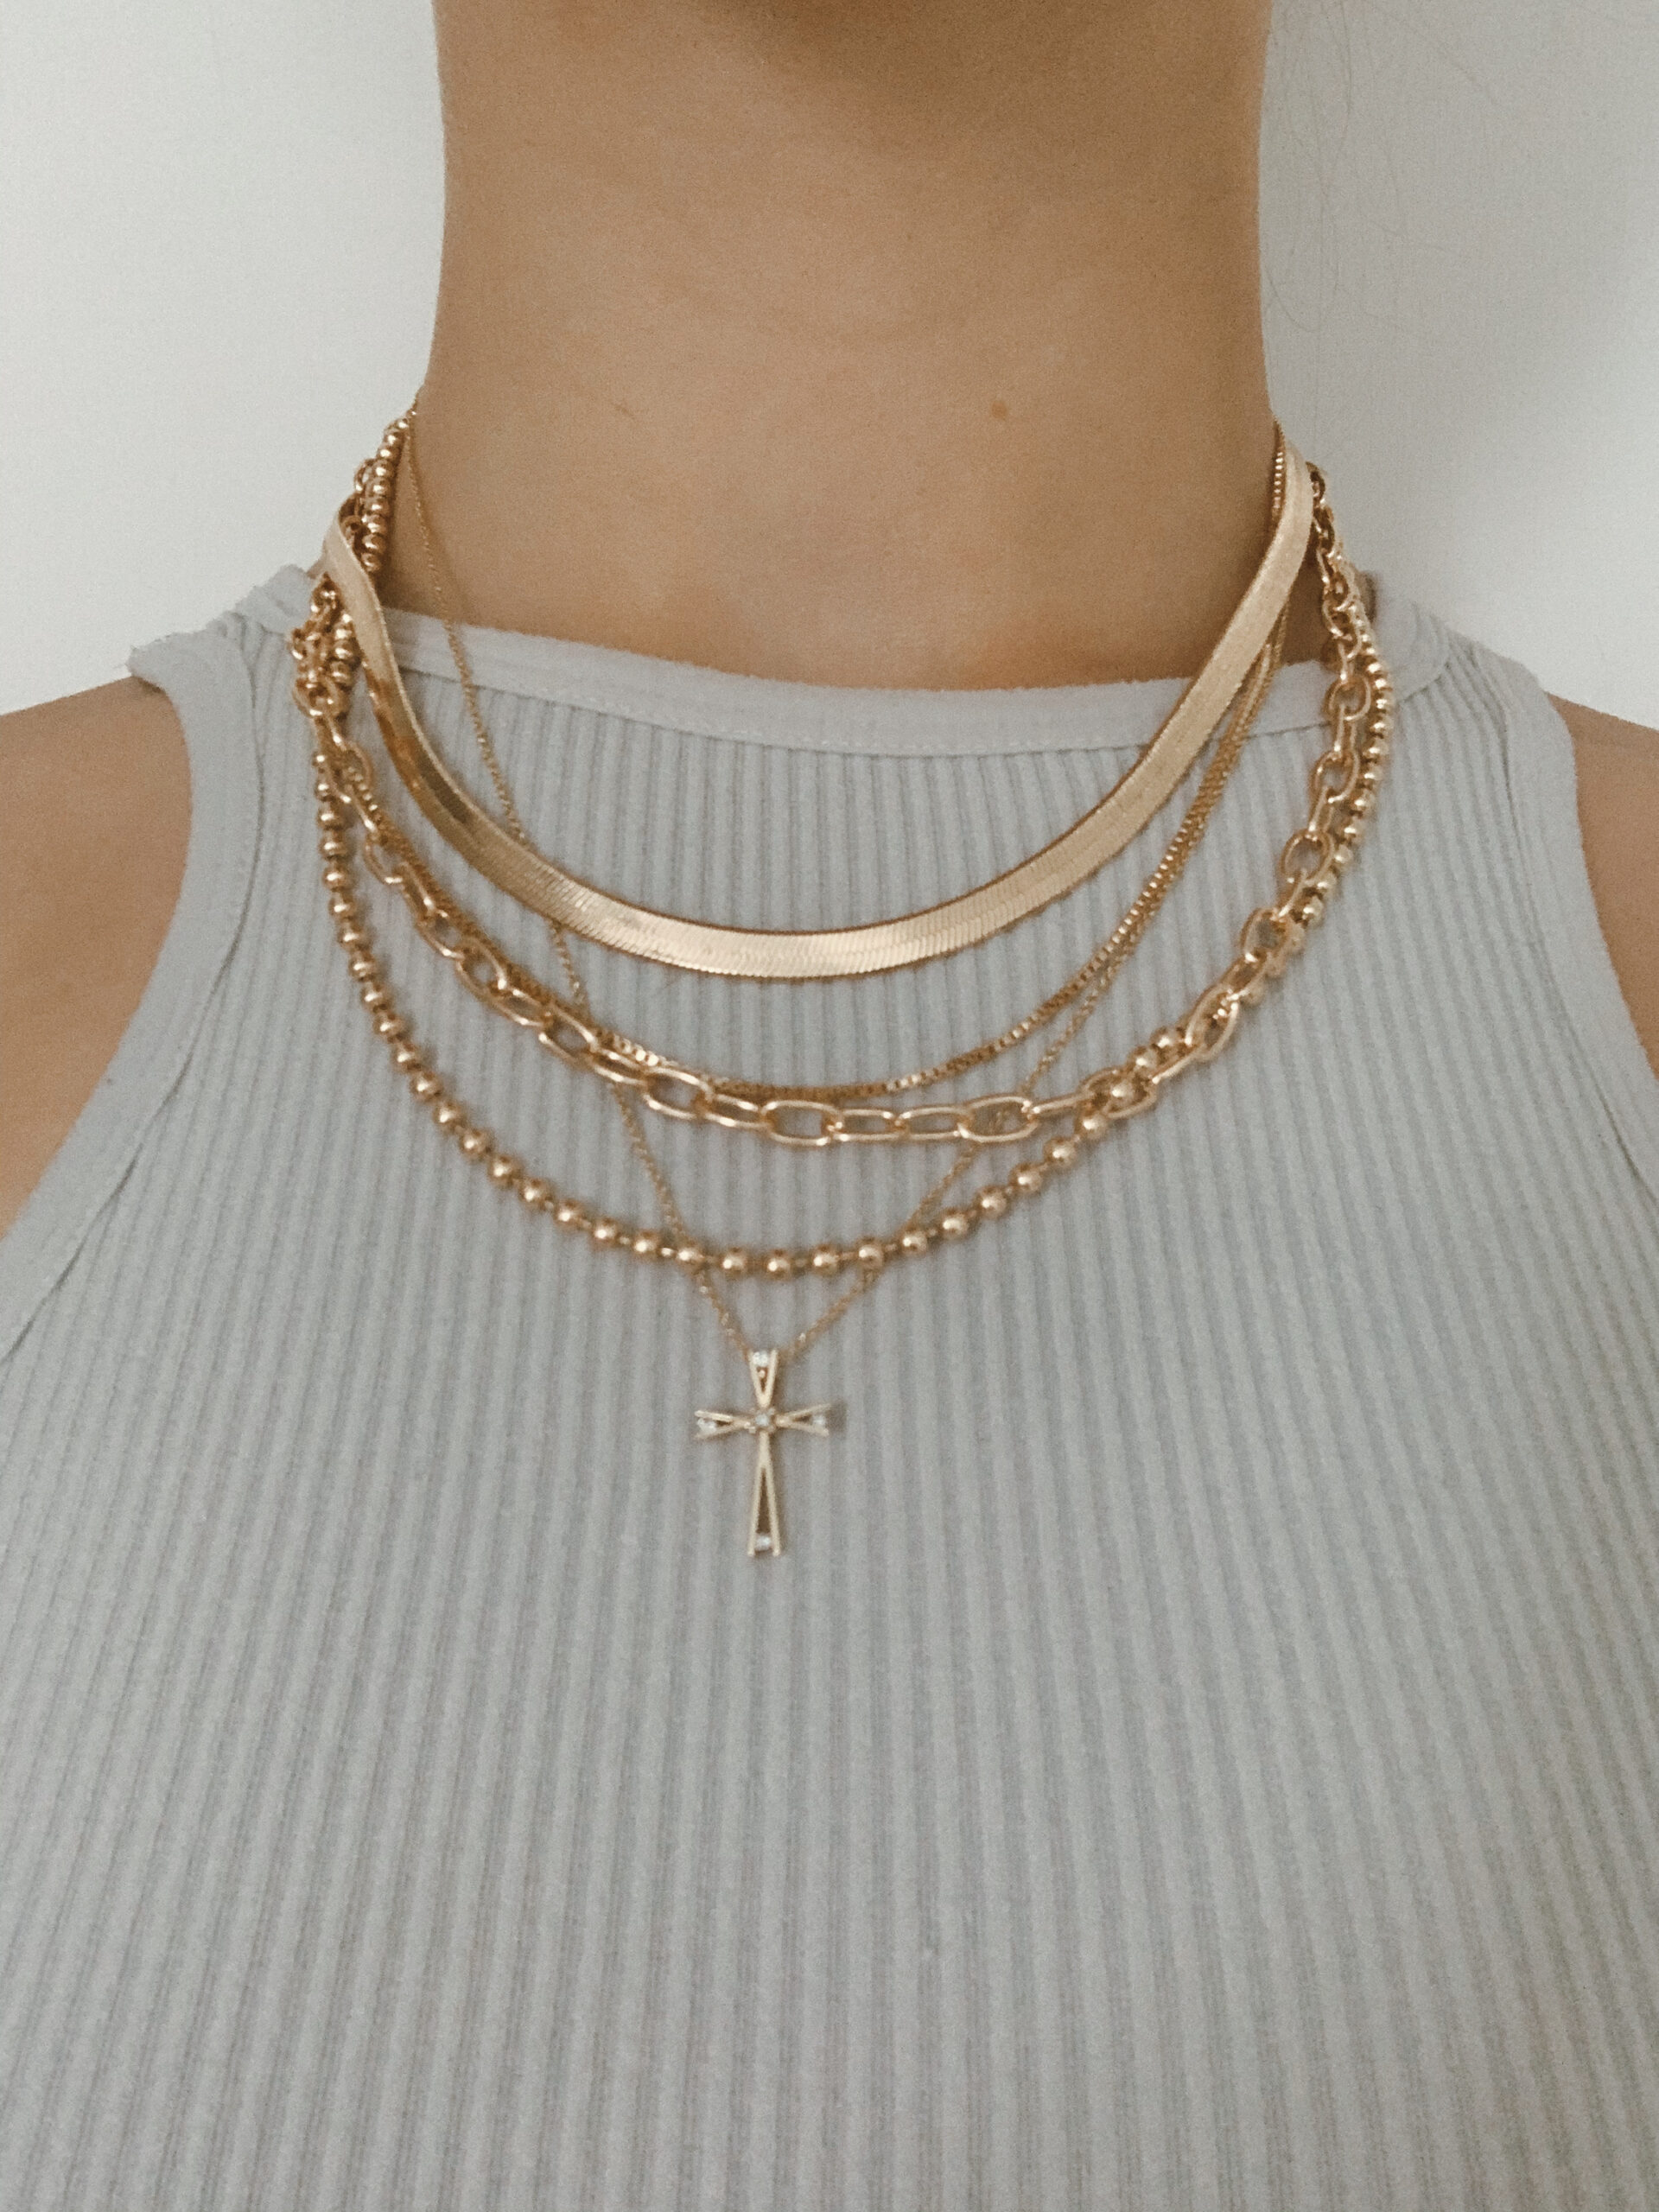 layered-necklace-jewelry-trend